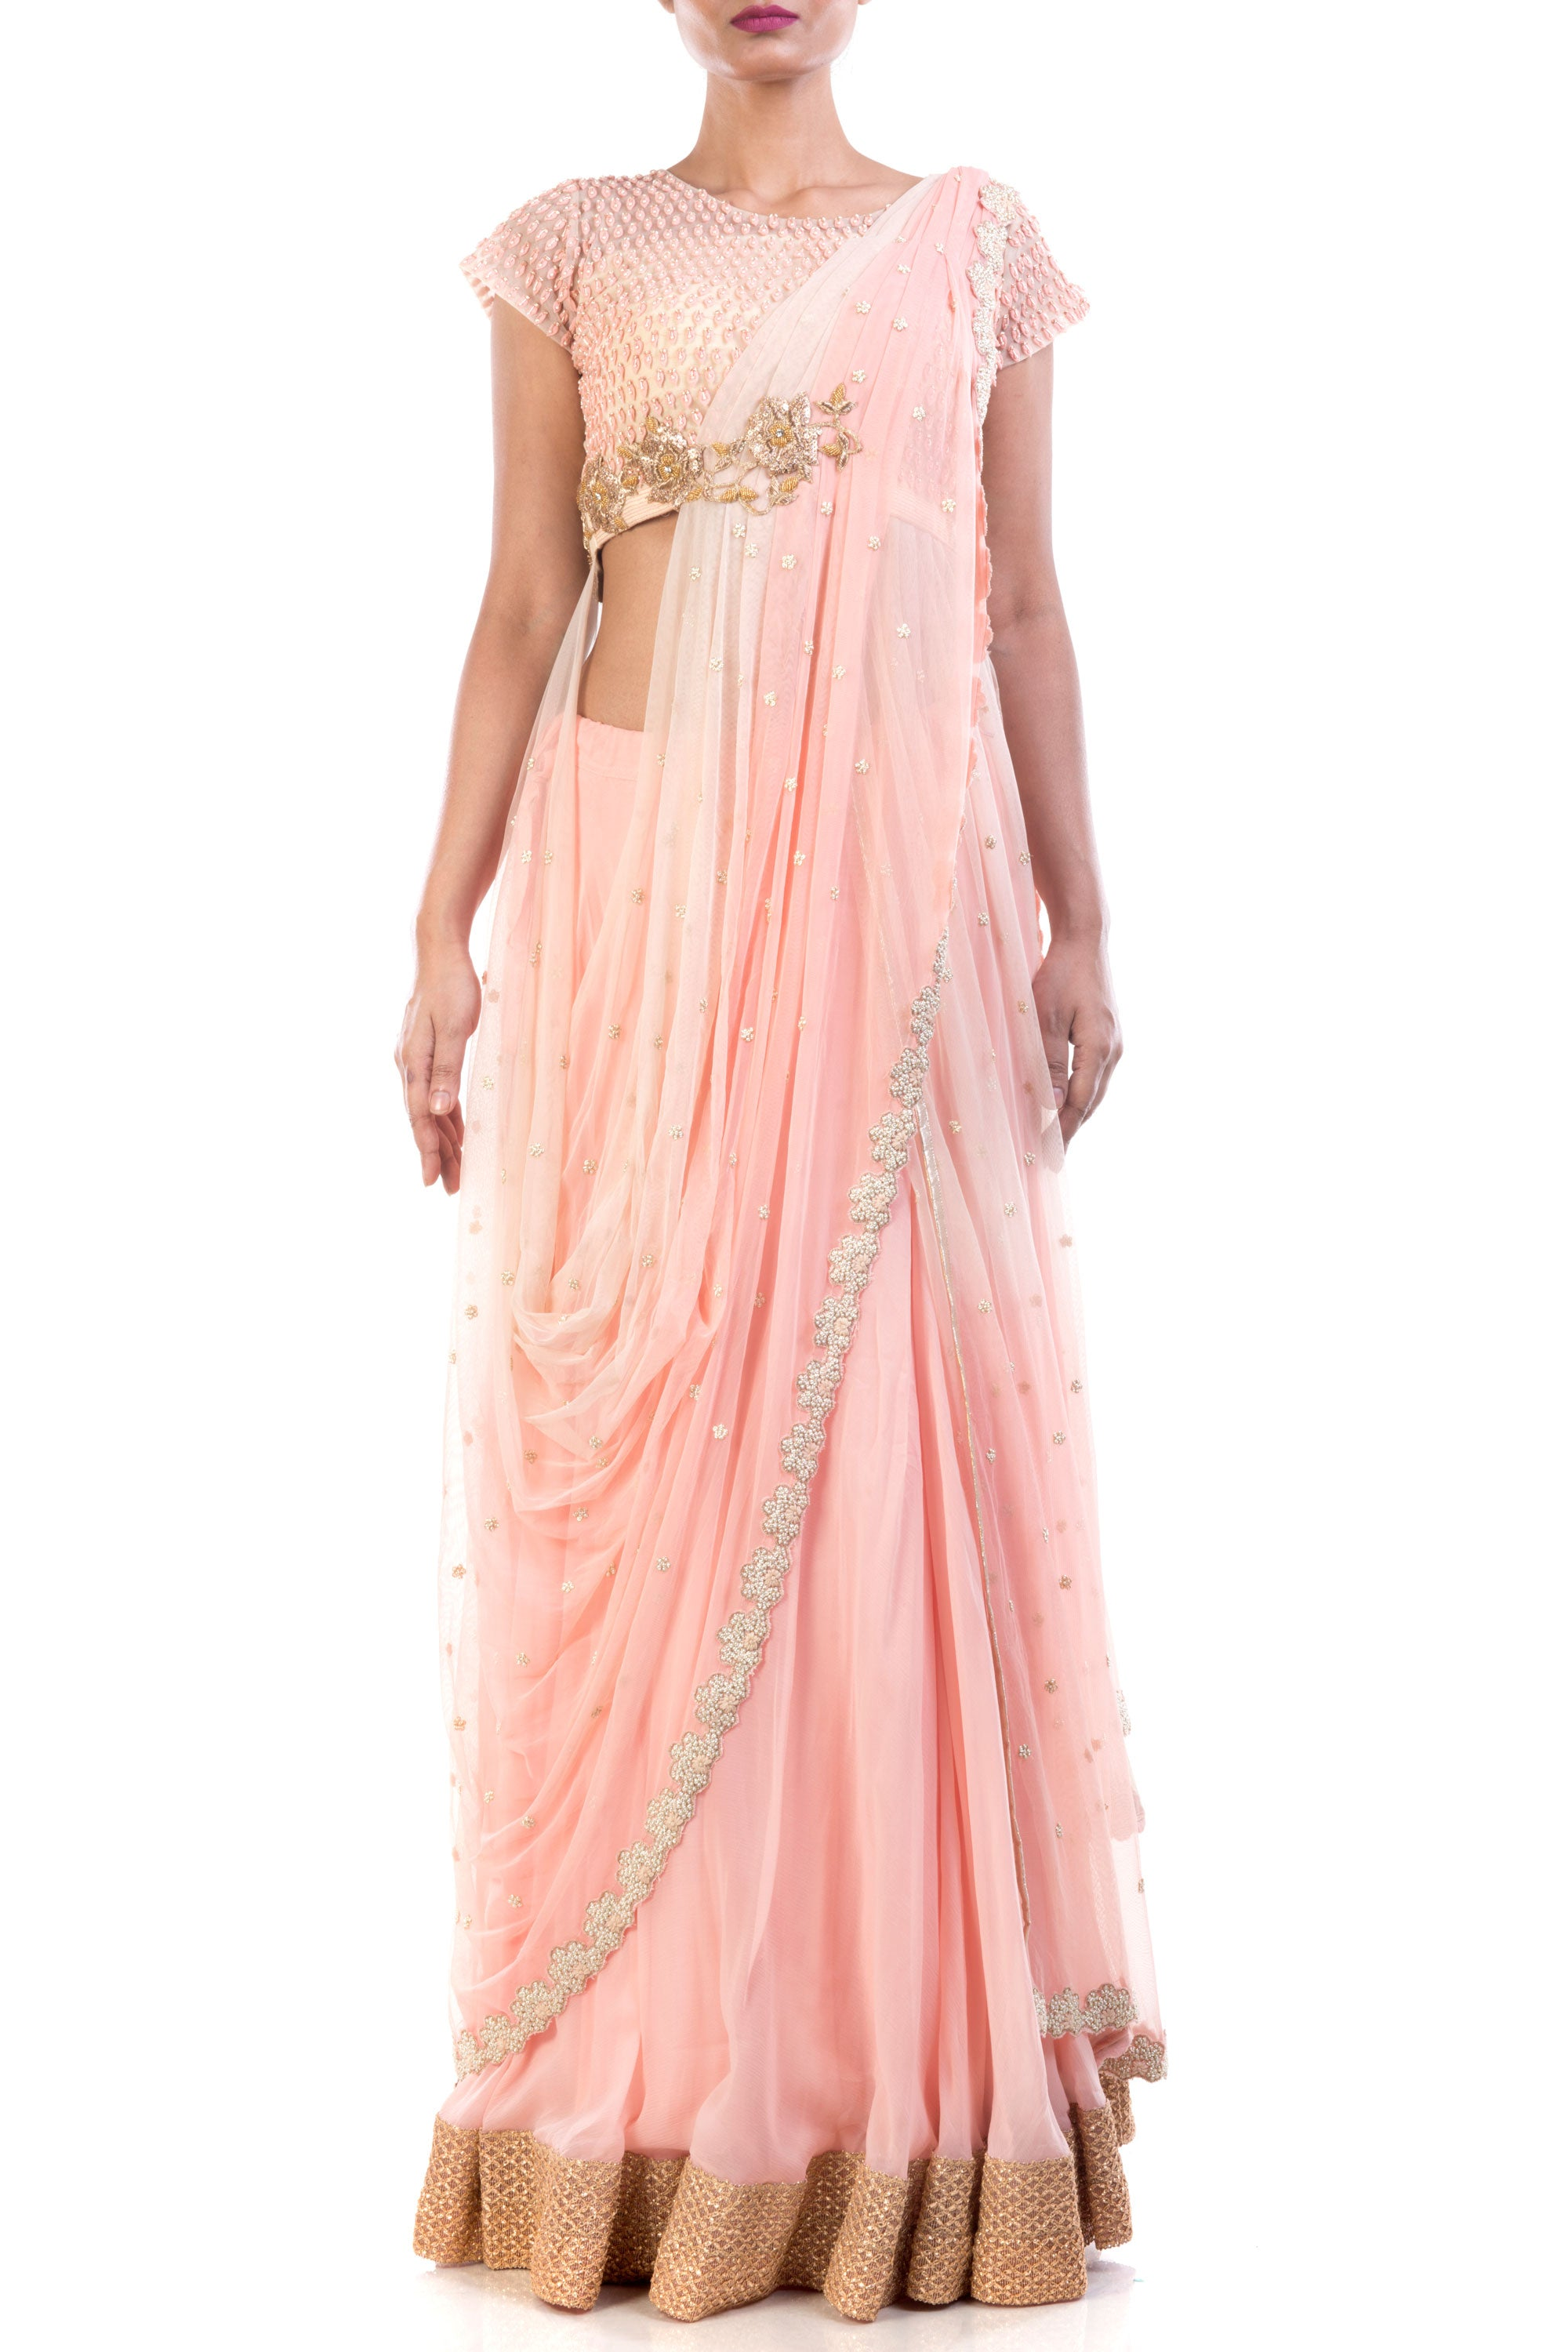 Bisque Lehenga With Attached Dupatta Front